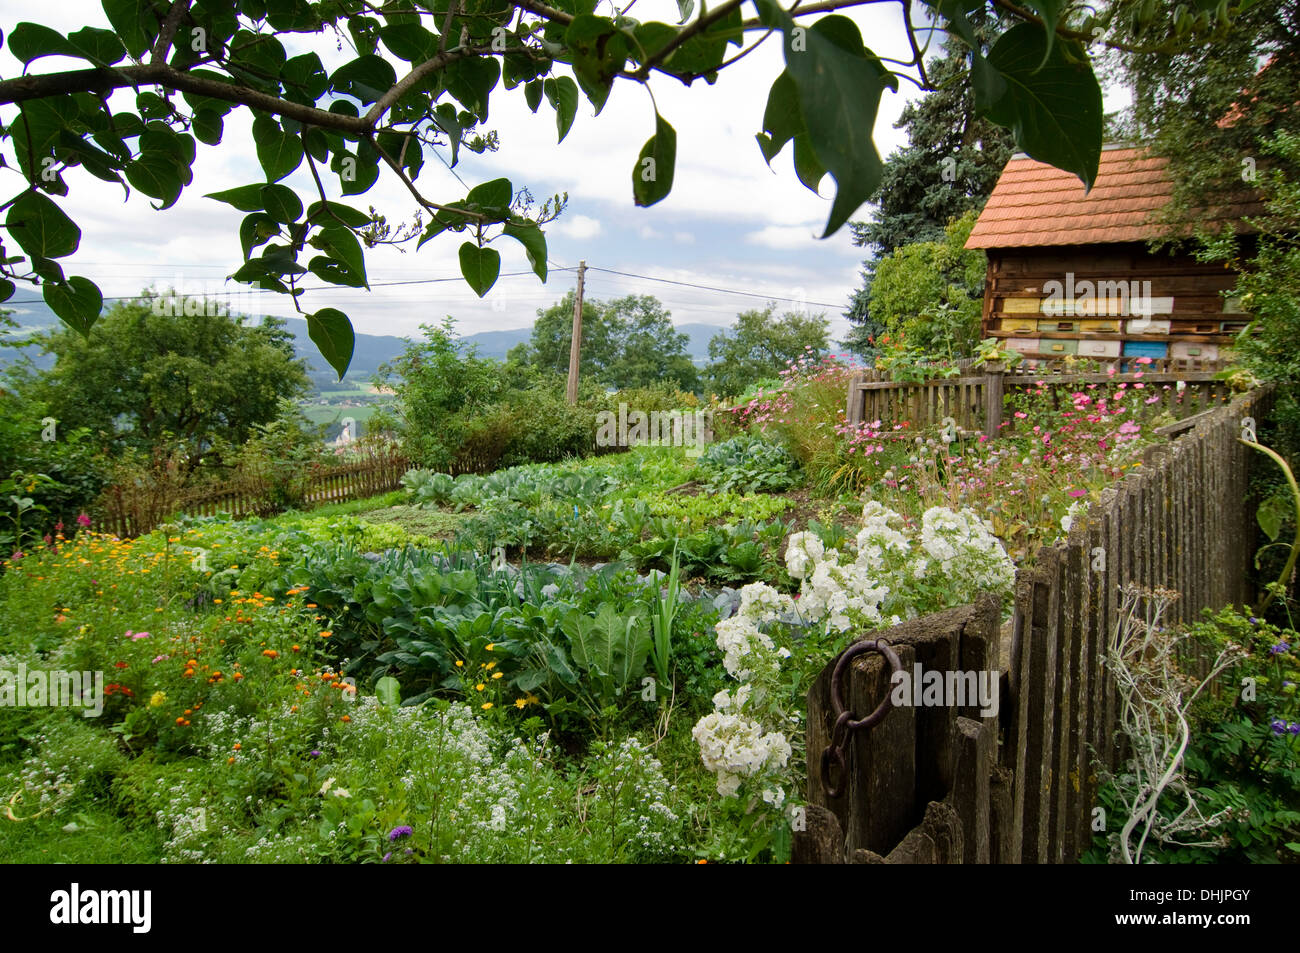 Cottage garden with beehives, Styria, Austria - Stock Image